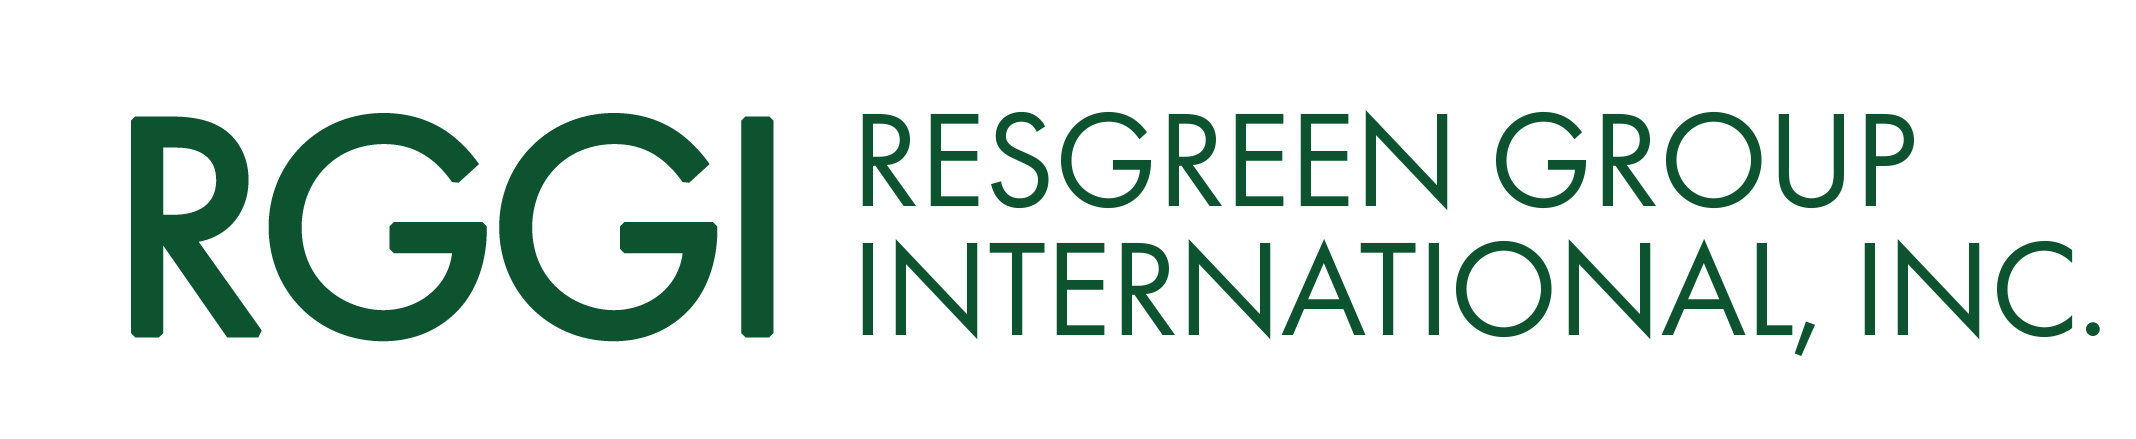 Resgreen Group International, Inc. (RGGI), an Established Maker of Industrial Robotic Products Begins Sales of Wanda, a Disinfecting Mobile Robot in Response to Strong Demand of the Covid Pandemic